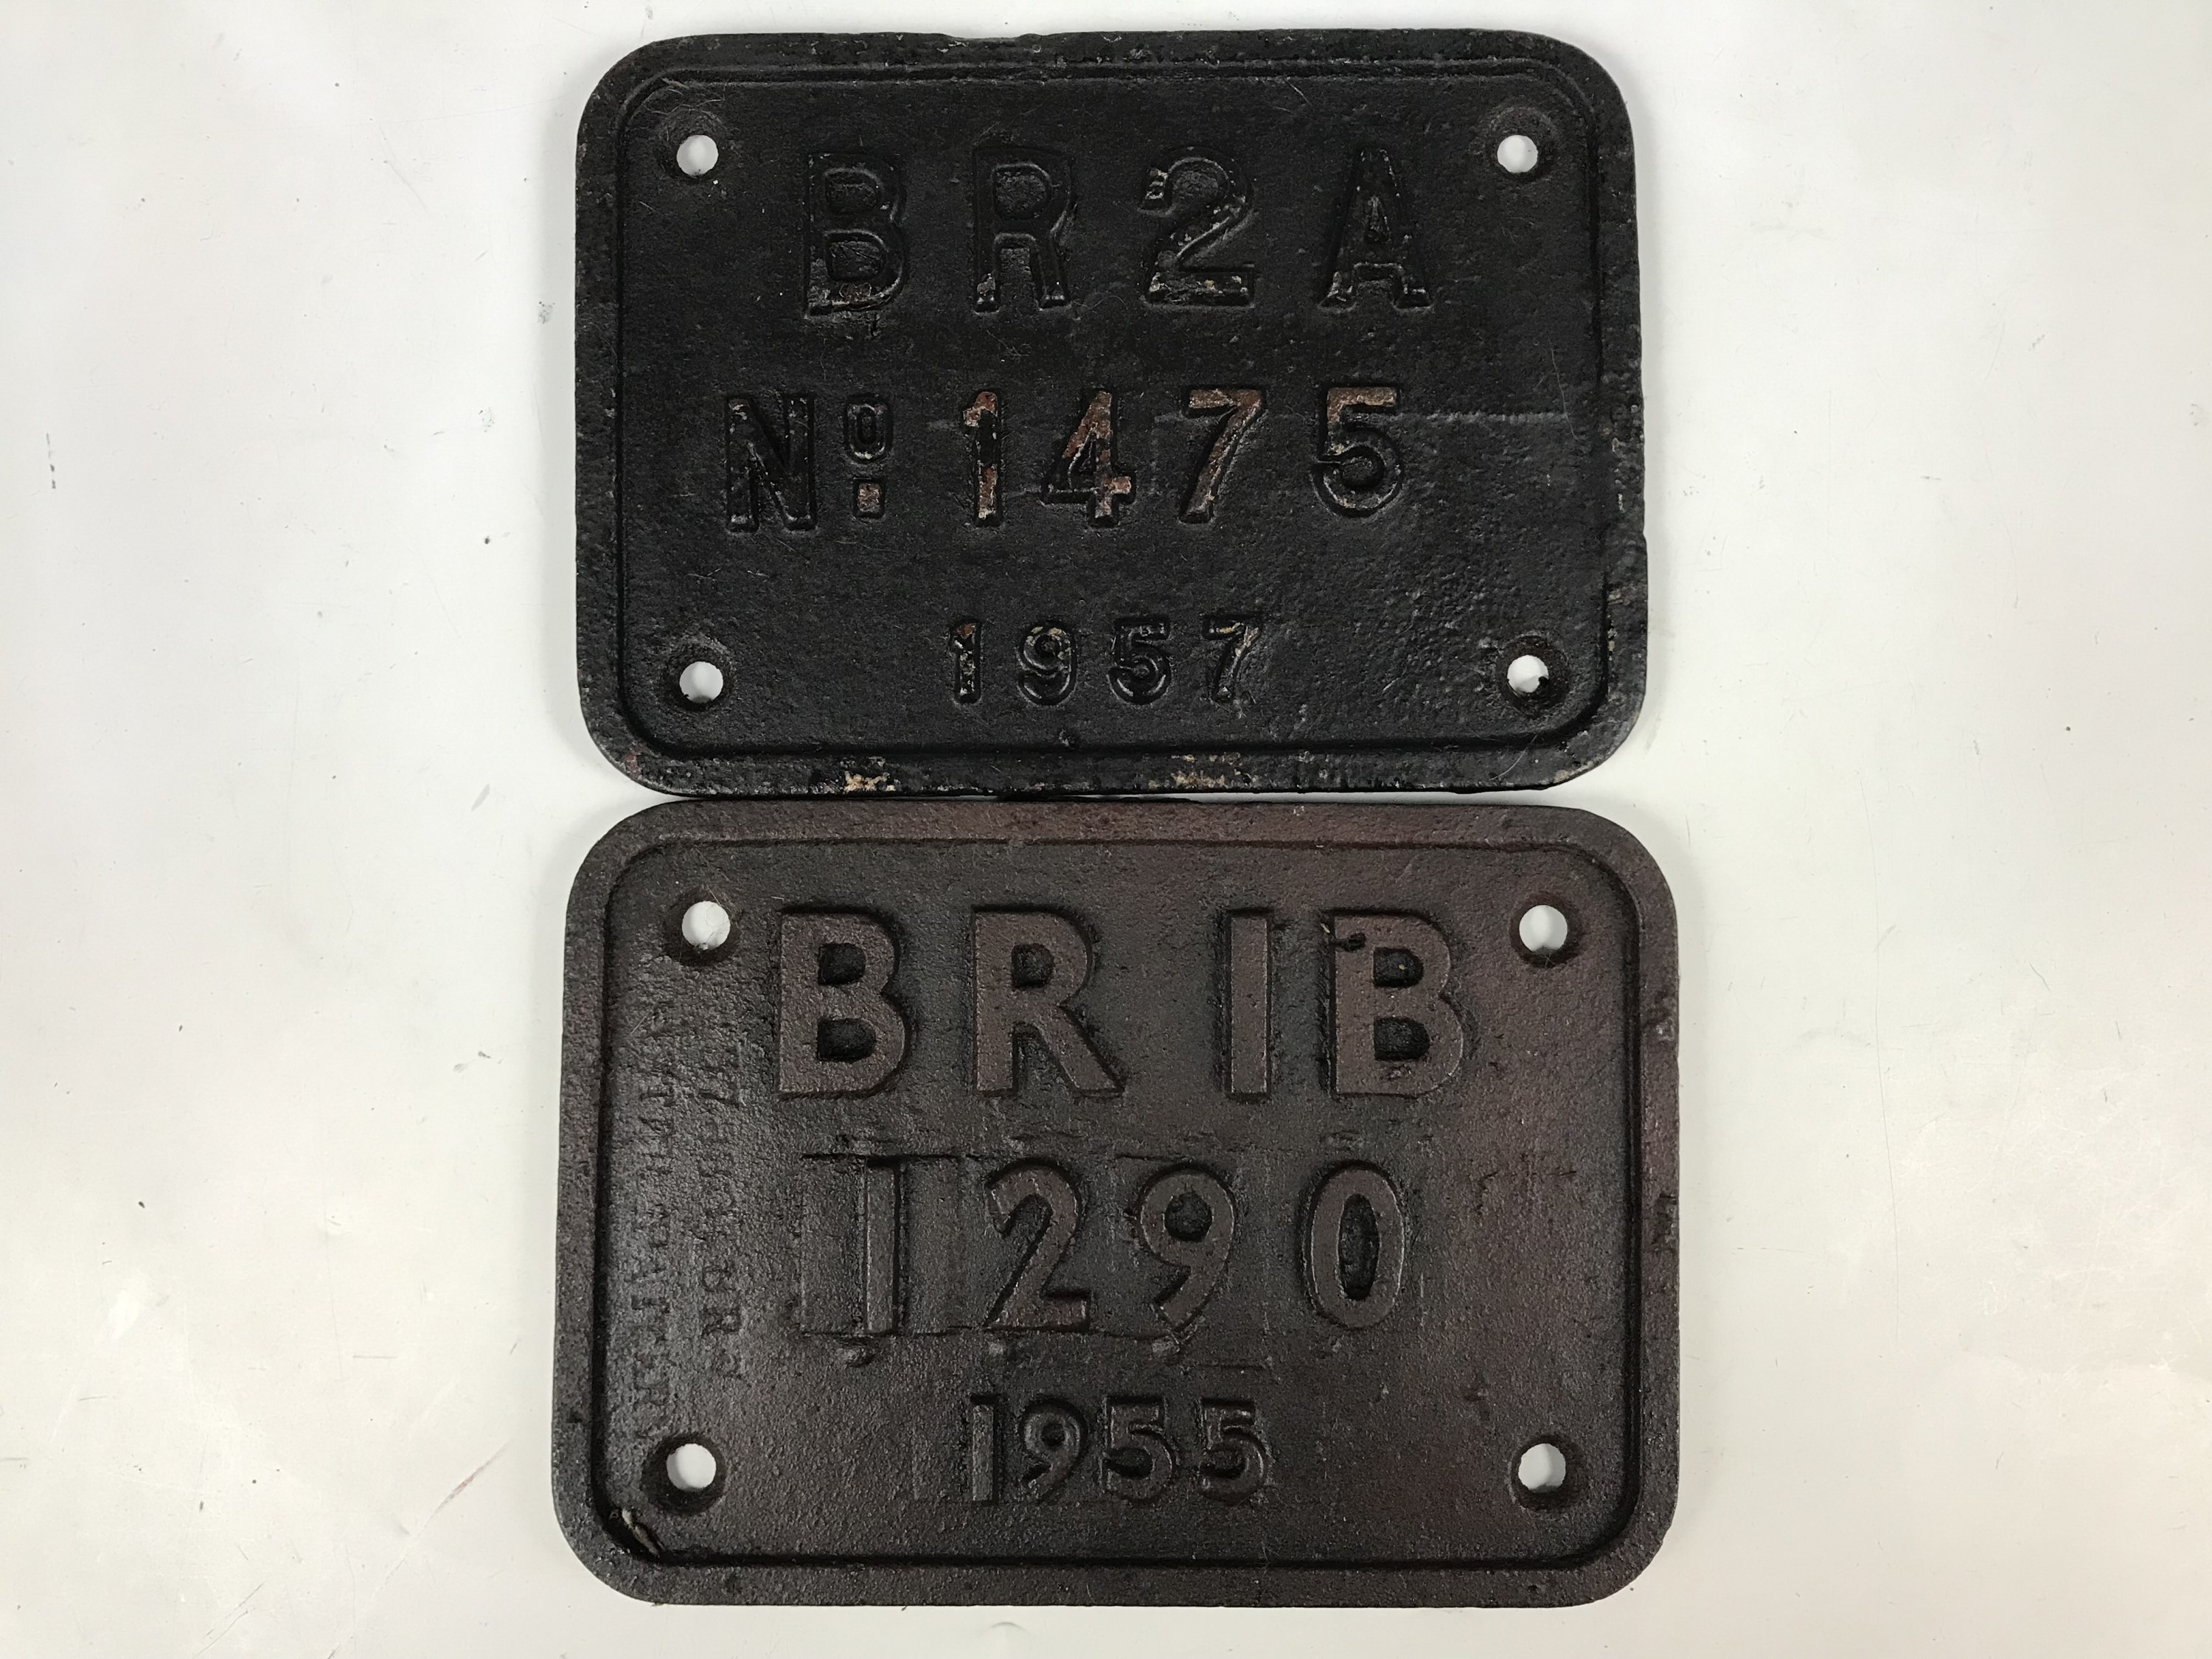 Lot 41 - Sundry railway locomotive builder / shed plates including BRIB-1290, 1955 and BR2A No. 1475, 1957